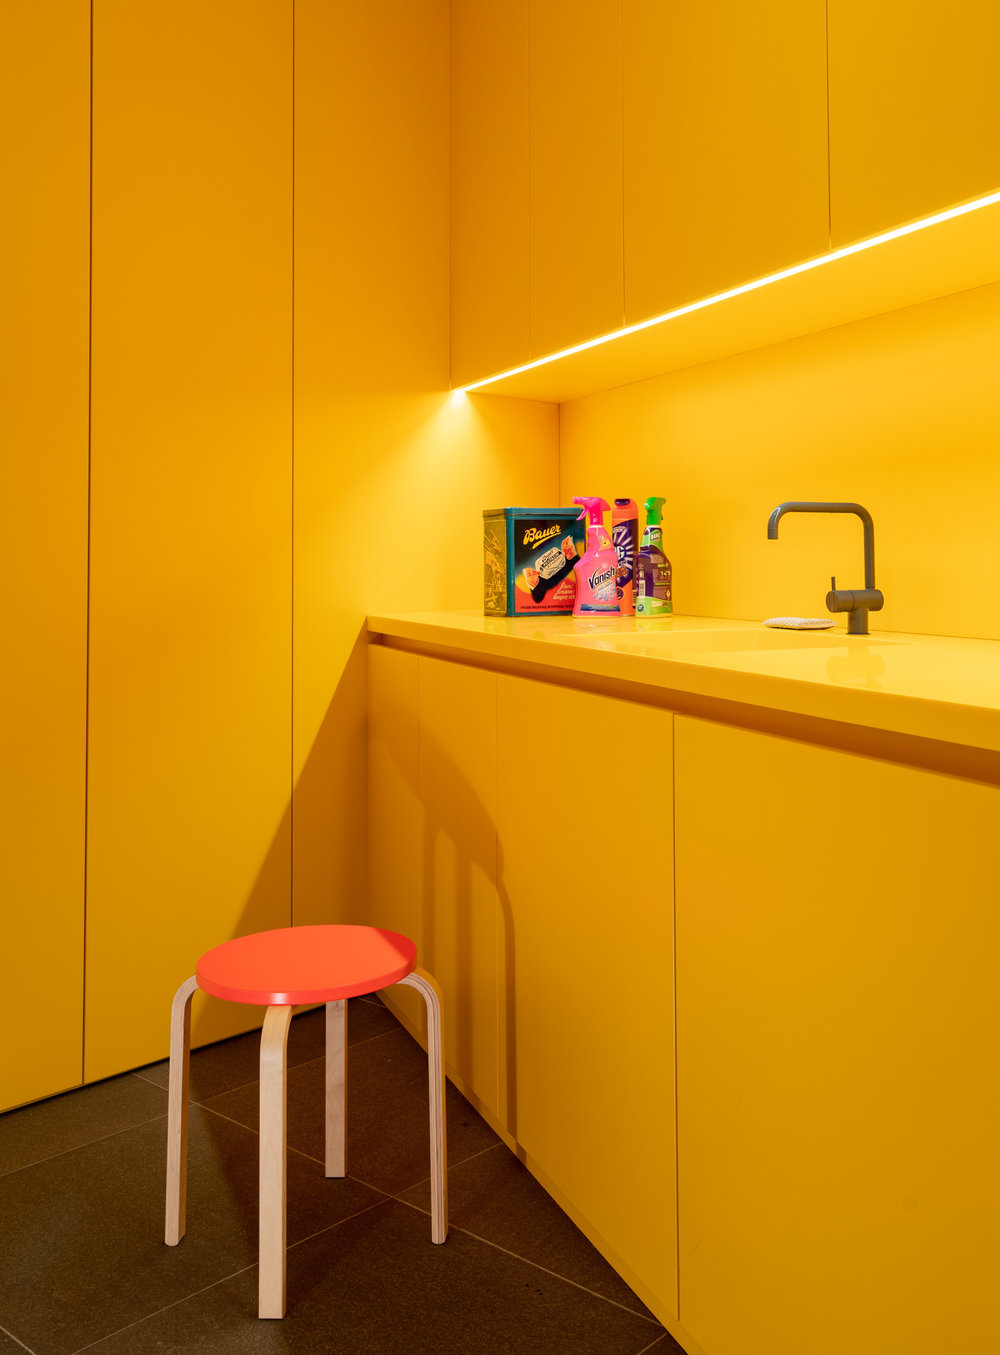 SEBASTIAN ZENKER INTERIOR DESIGN - LAUNDRY ROOM  10.jpg